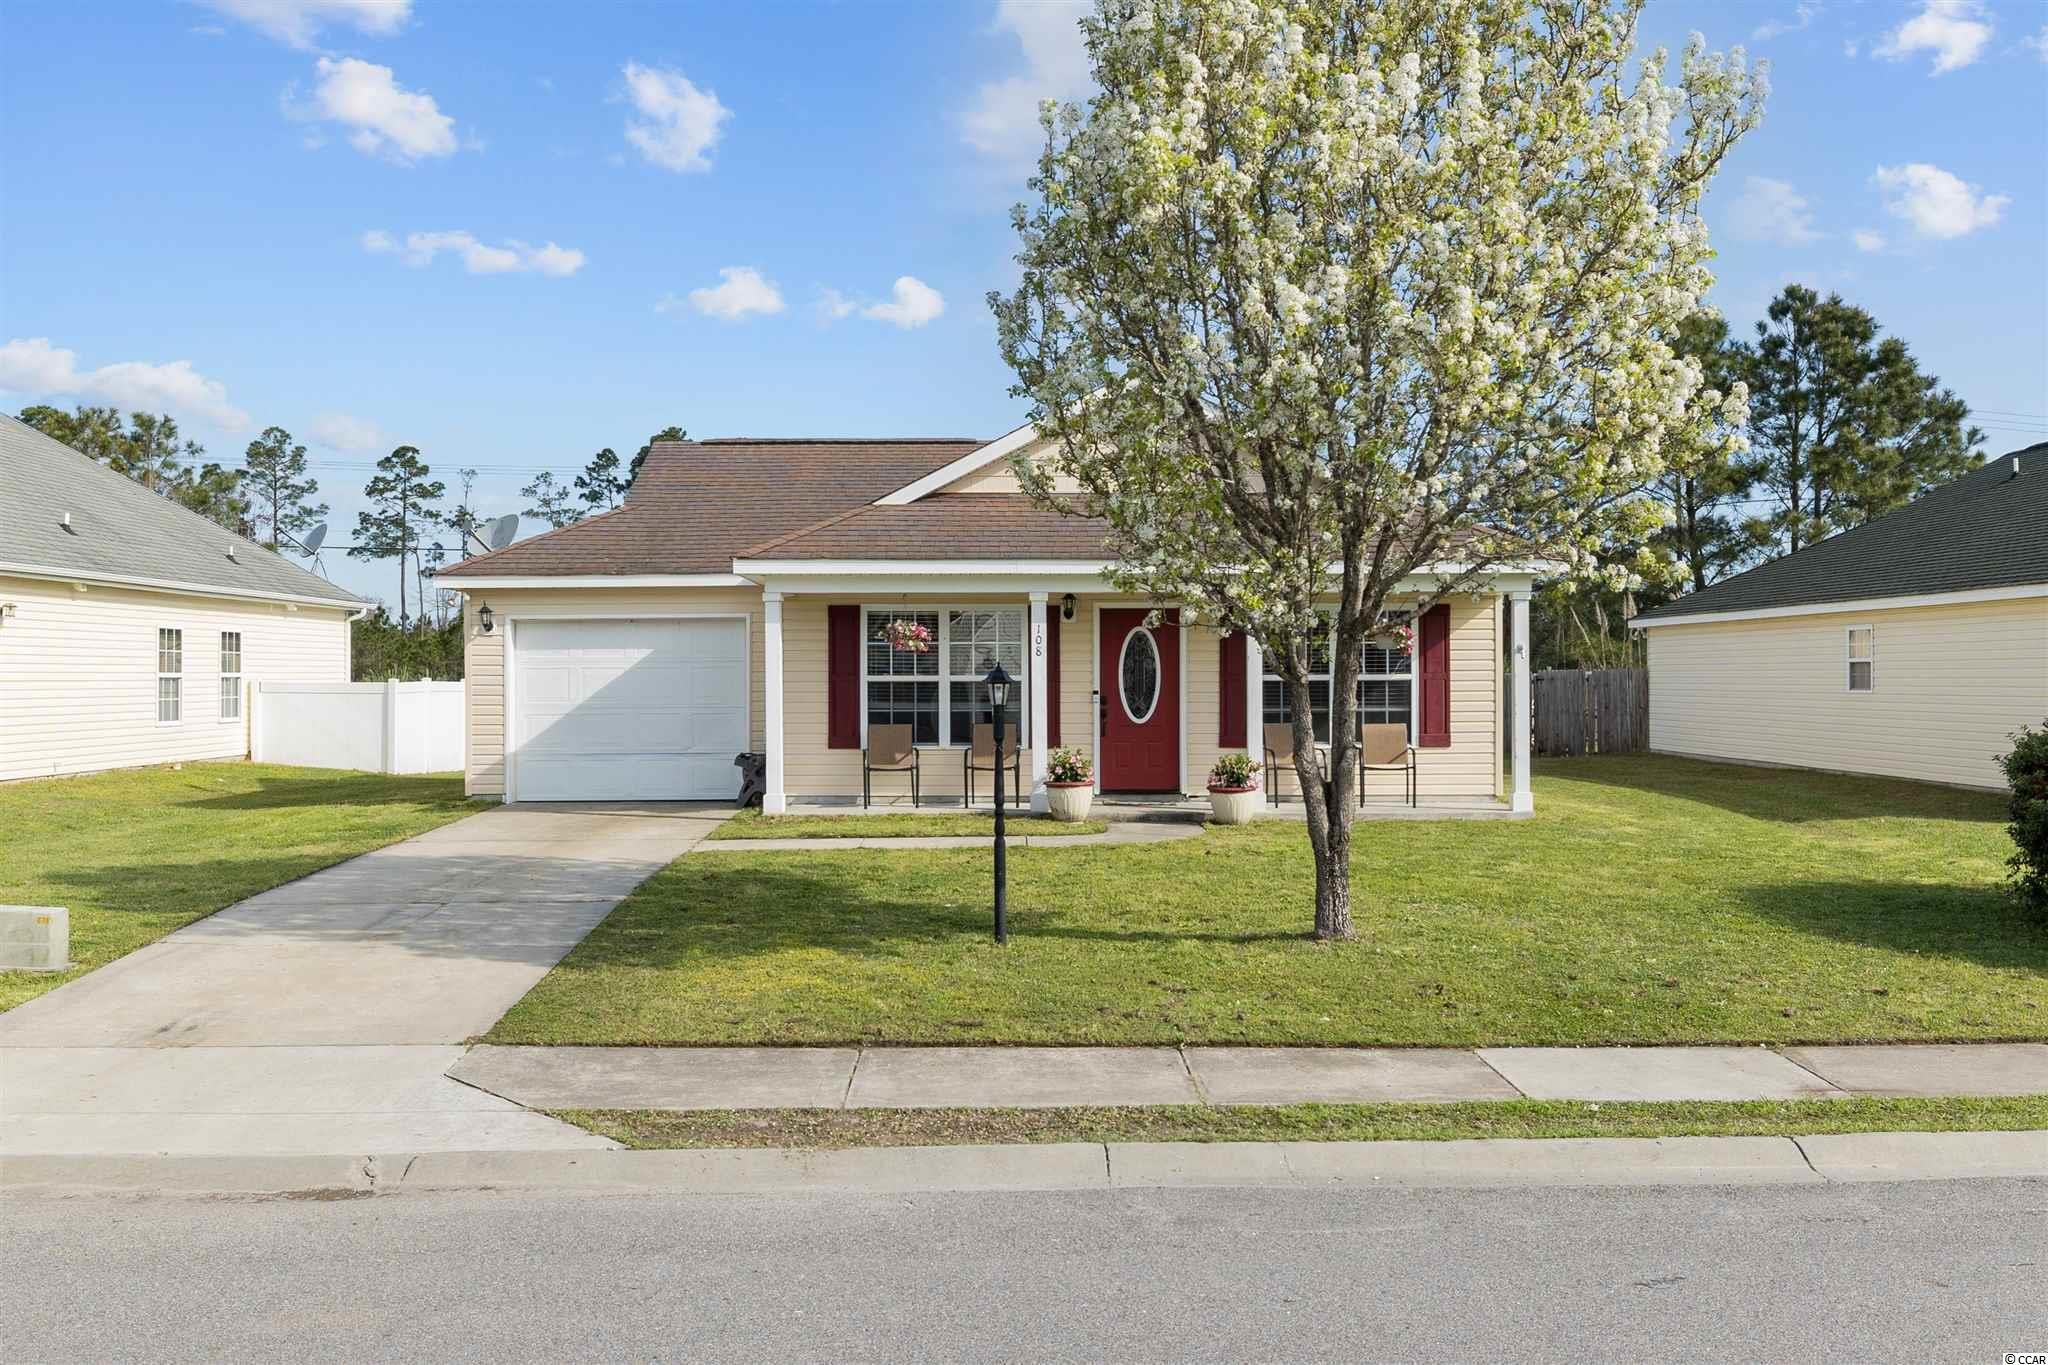 The location of this house doesn't get much better! Located just 1.3 miles to the North Myrtle Beach sports complex and Highway 31 makes this no HOA community a perfect gem. The cute front porch is so welcoming and perfect for a set of rocking chairs. As you enter the home, you'll immediately notice the beautiful new floors throughout the whole home and tile featured in the wet areas. High vaulted ceilings in the living room and dining room makes it feel spacious and open. New fencing has been installed along the back of the property. This amazing floor plan offers 3 nice size bedrooms. The master bedroom opens up the the back deck and filled with so much natural sunlight. Dont miss the opportunity of calling this beautiful bright and airy house your home.